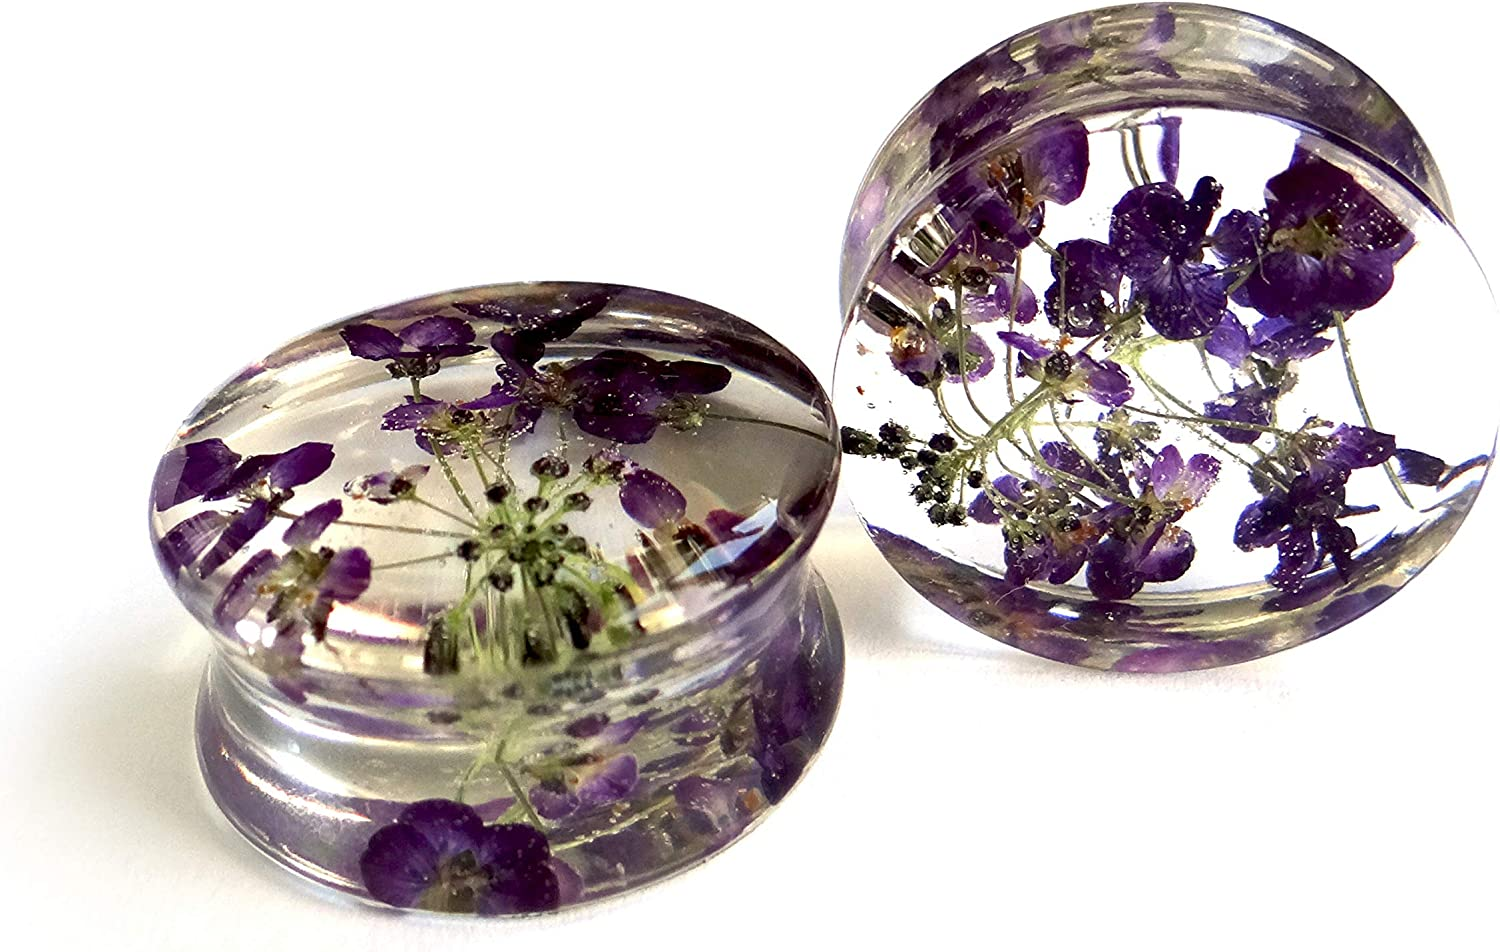 CLEARANCE 2g 6mm Purple Flower Ear Plugs Gauges Pair Wedding Real Pressed Wild Flowers Plant Nature Wiccan Body Jewelry MAGIC EARS by {118}